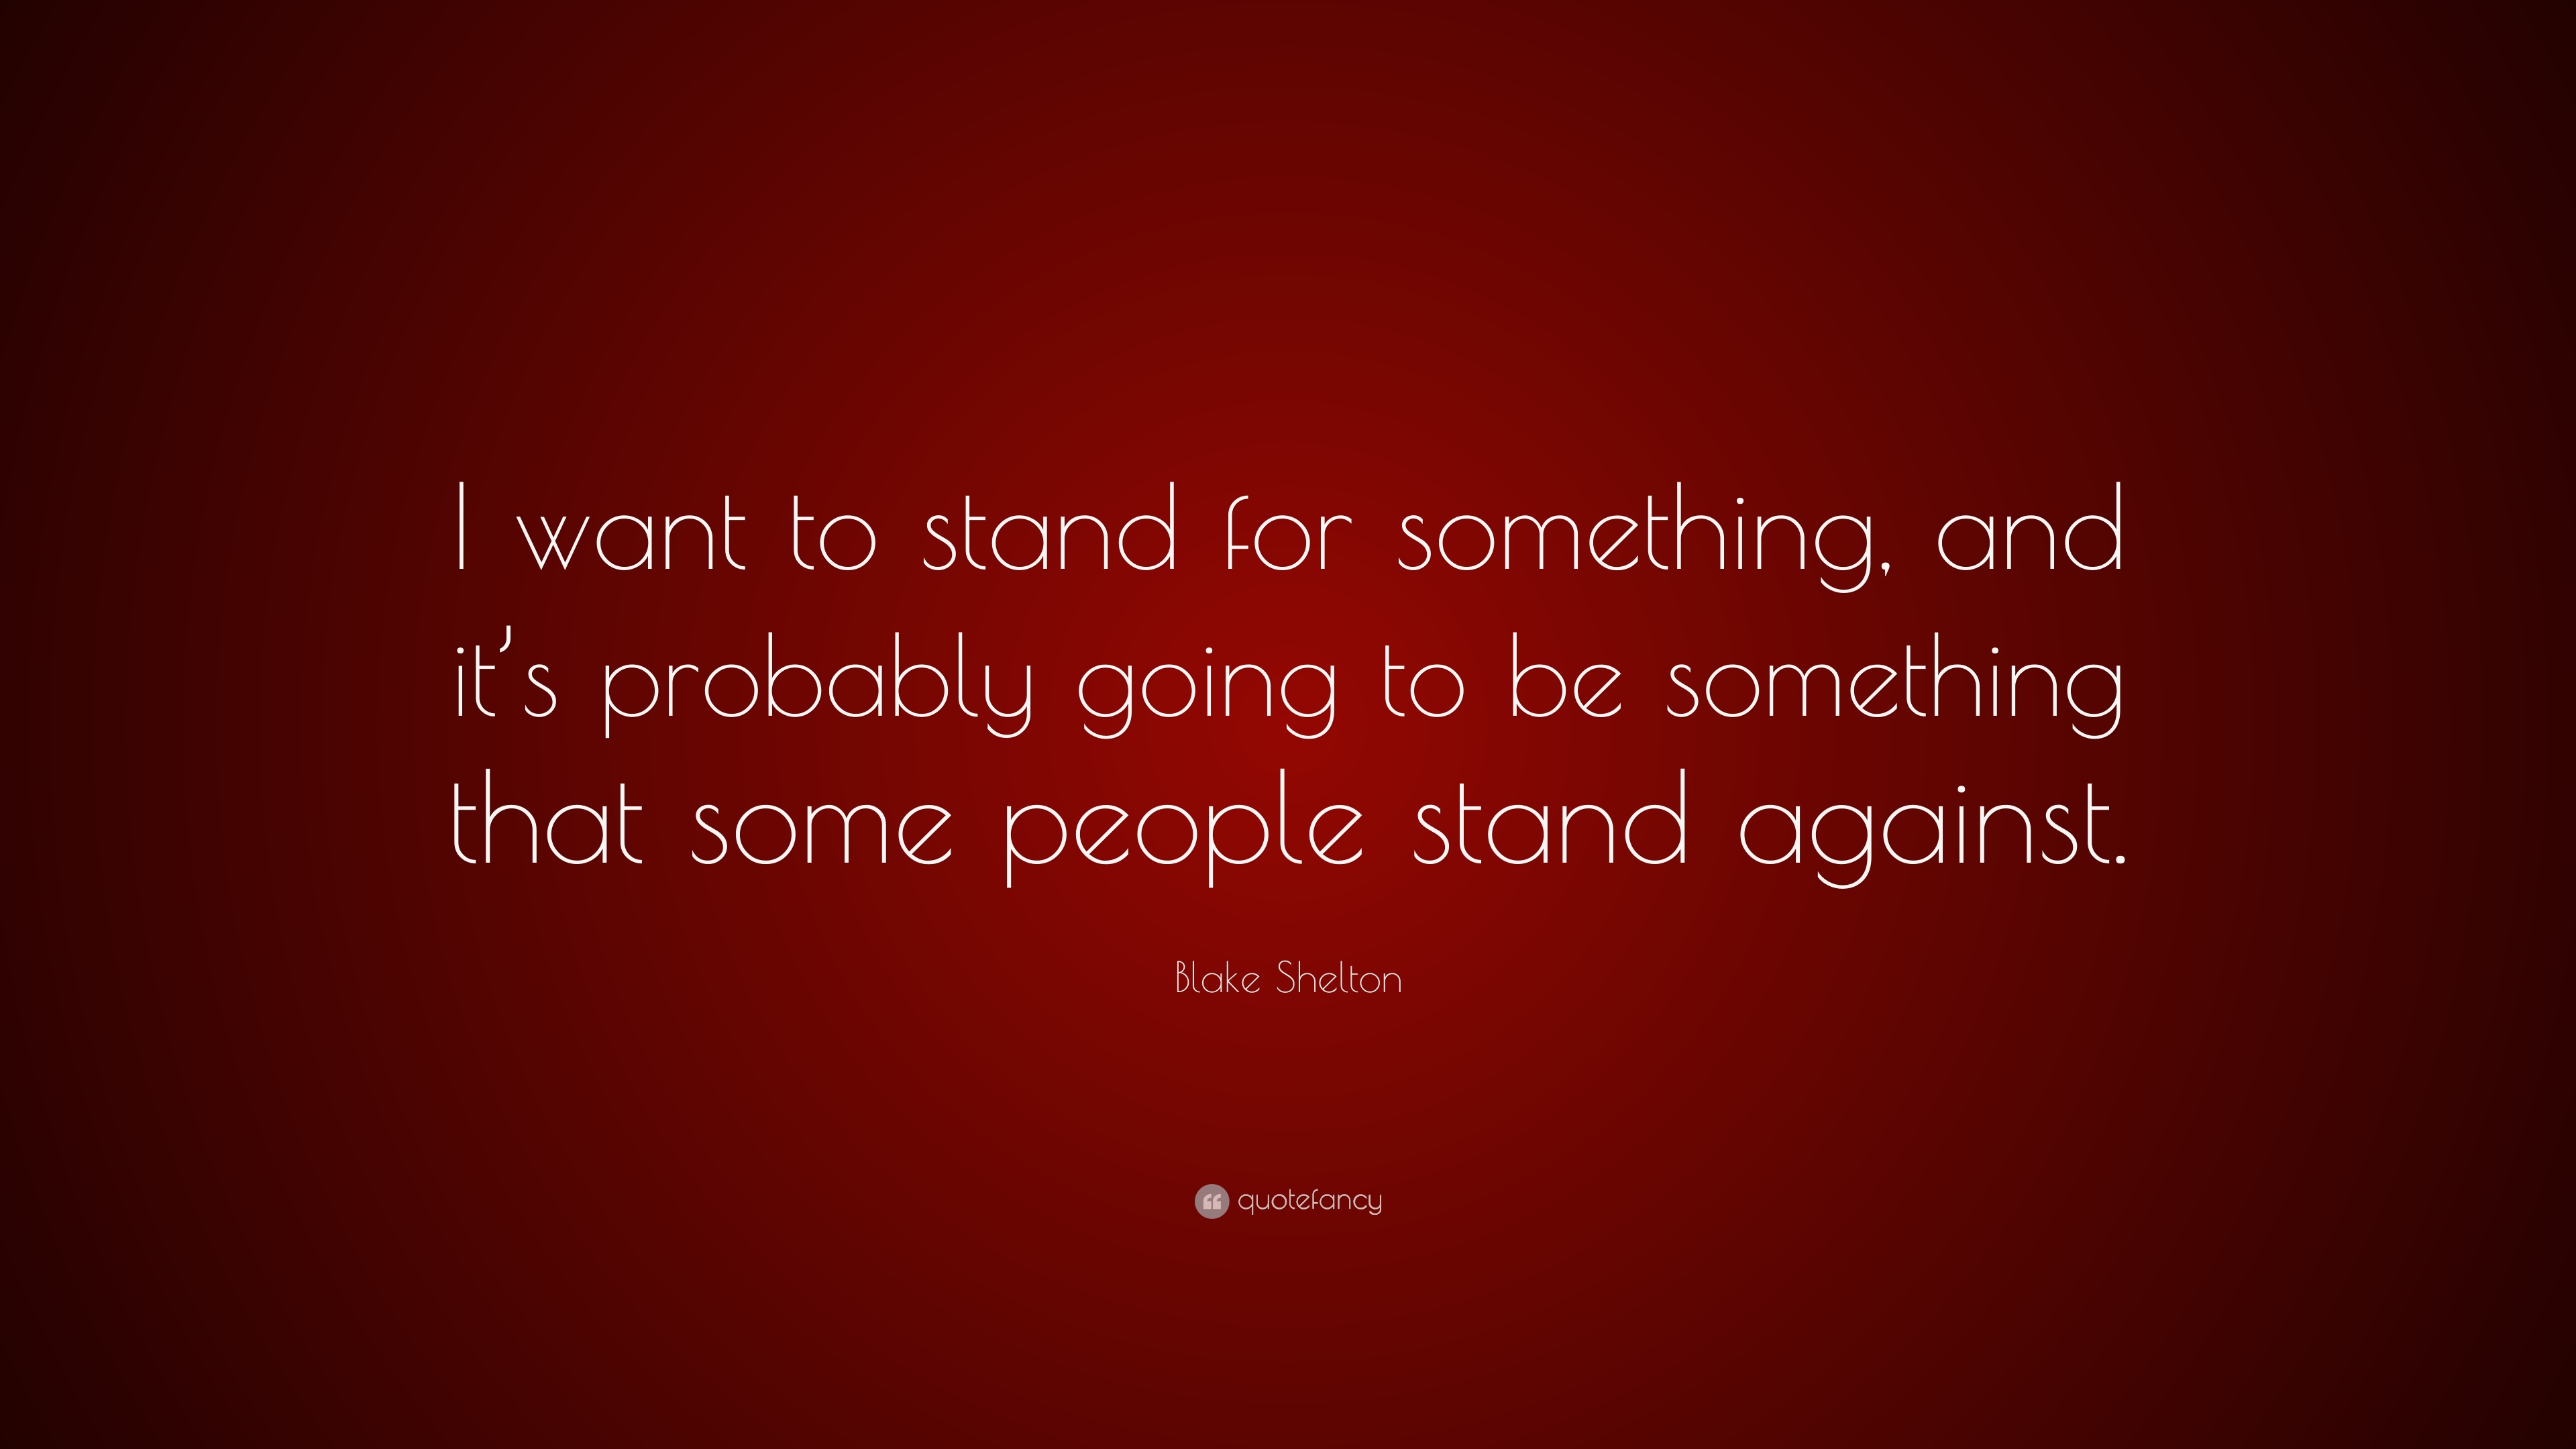 Blake Shelton Quote I Want To Stand For Something And Its